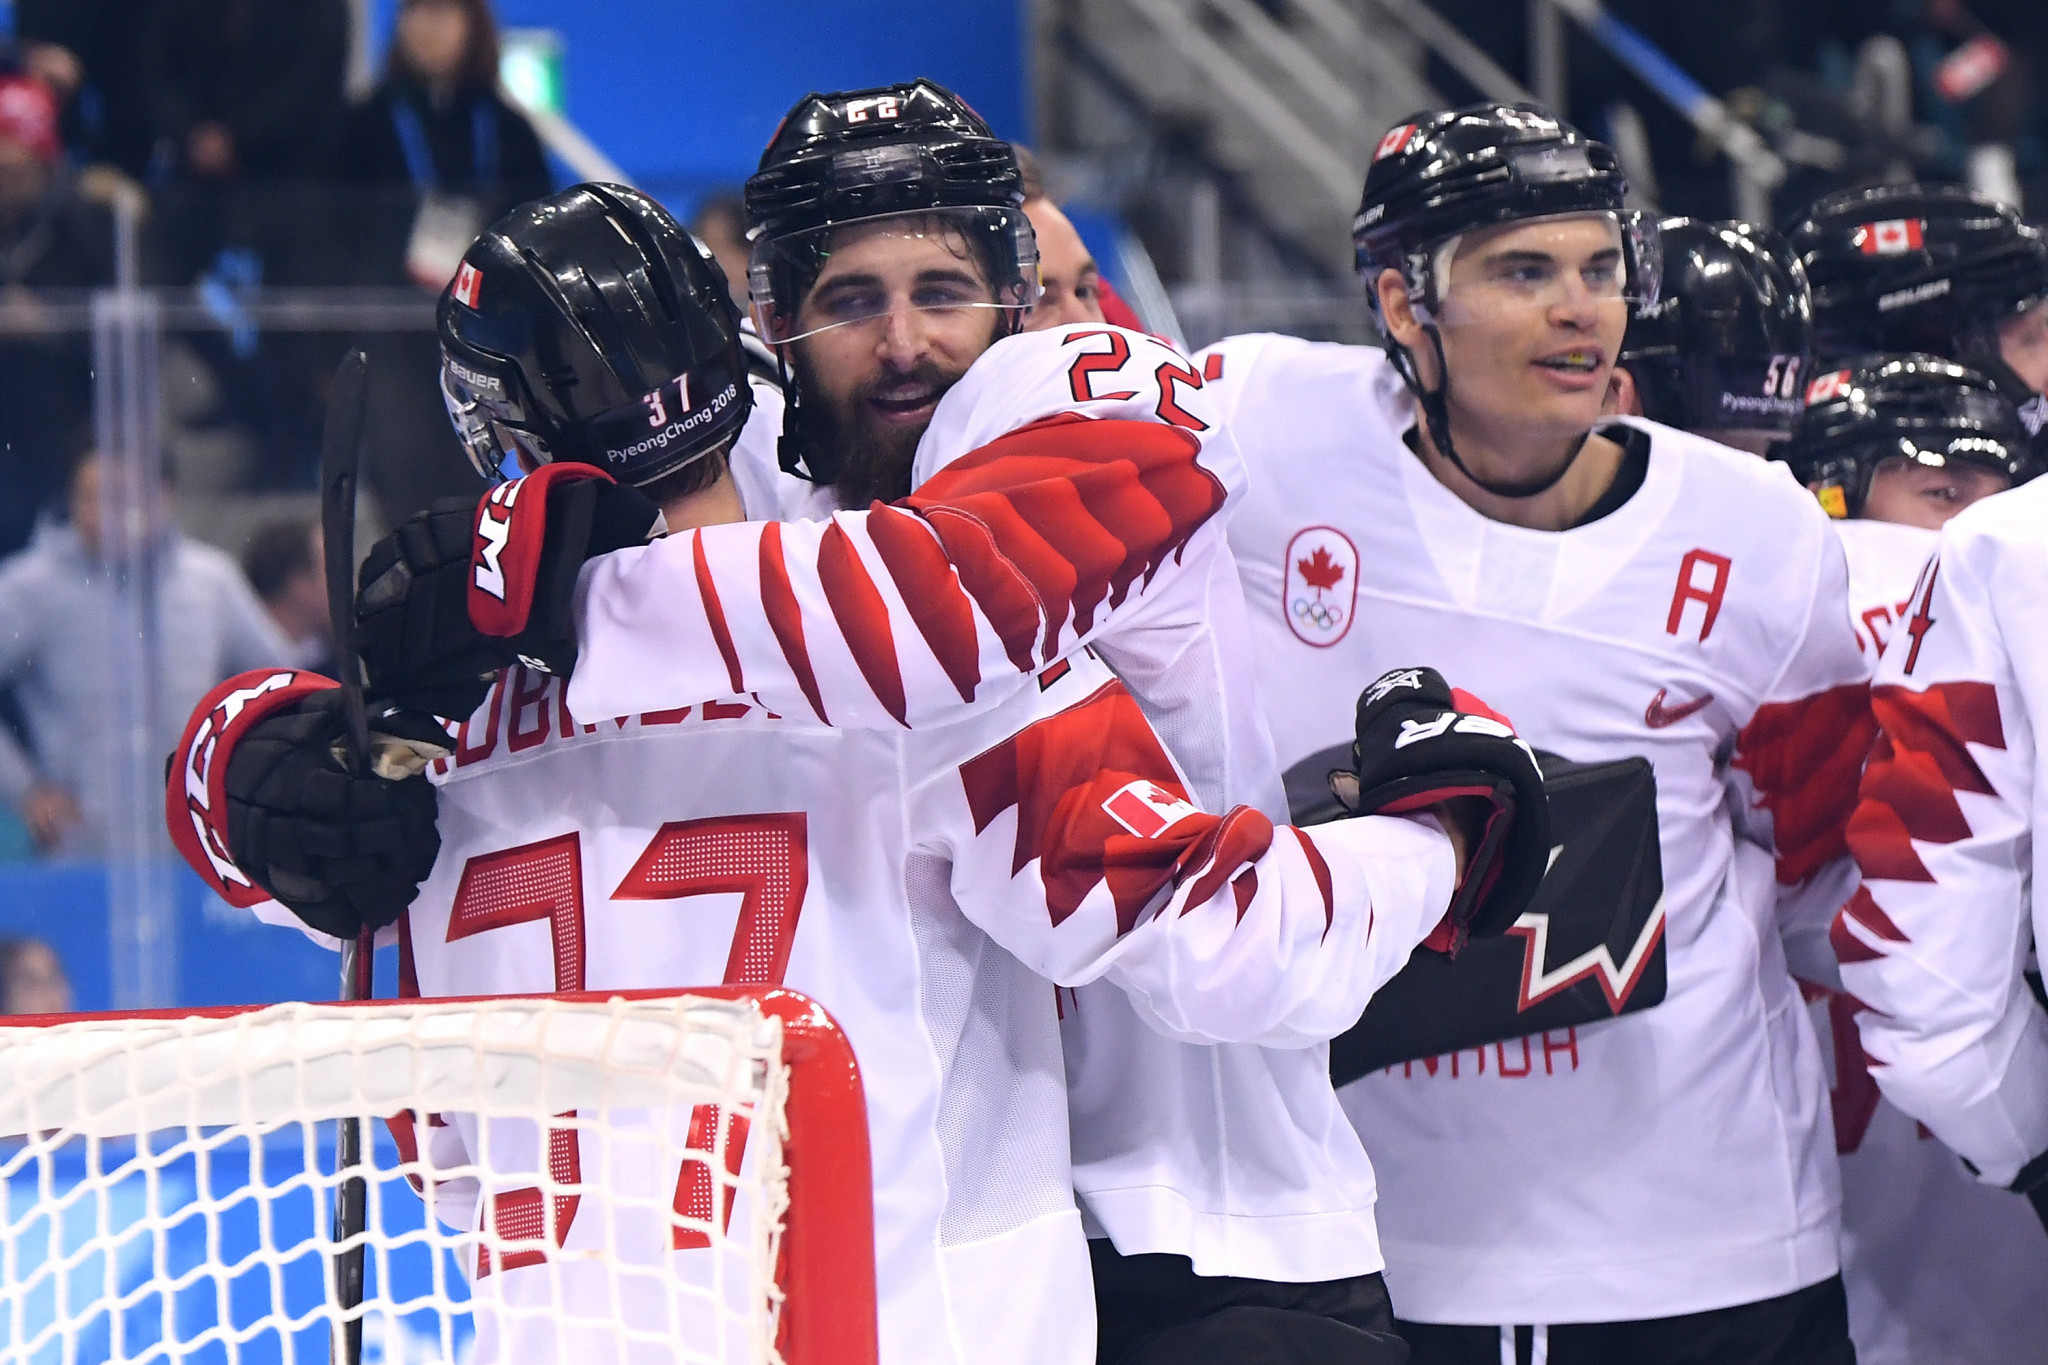 Canada remain as men's world number one in IIHF rankings despite Olympic bronze